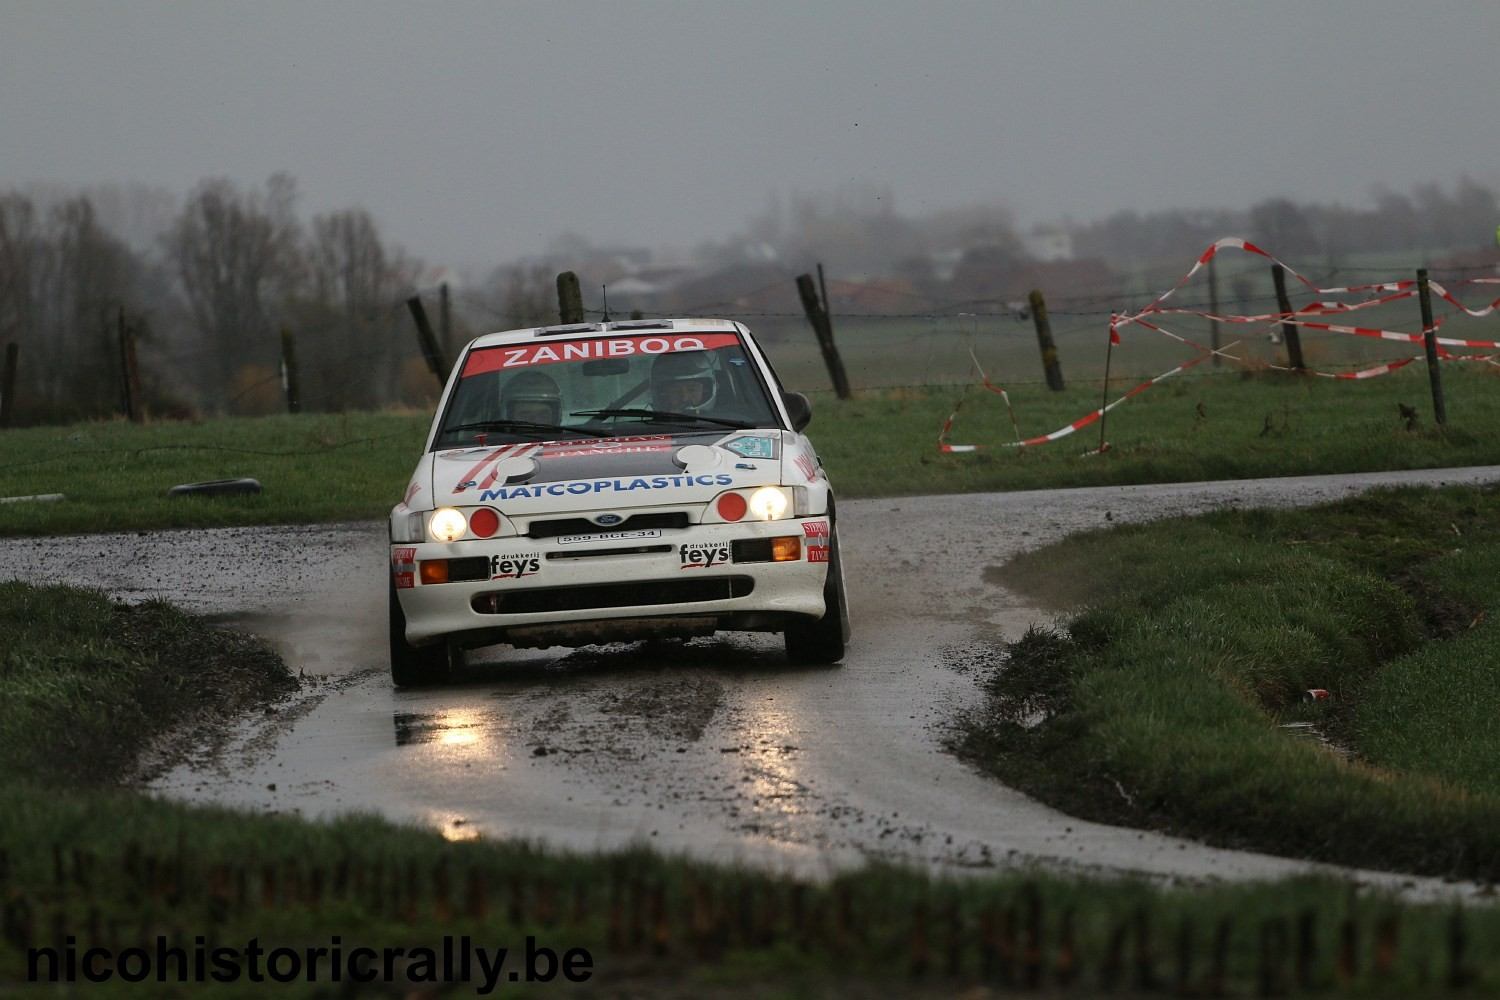 Verslag Rallysprint van Moorslede: Paul Lietaer demonstreert met zijn Ford Escort Cosworth !